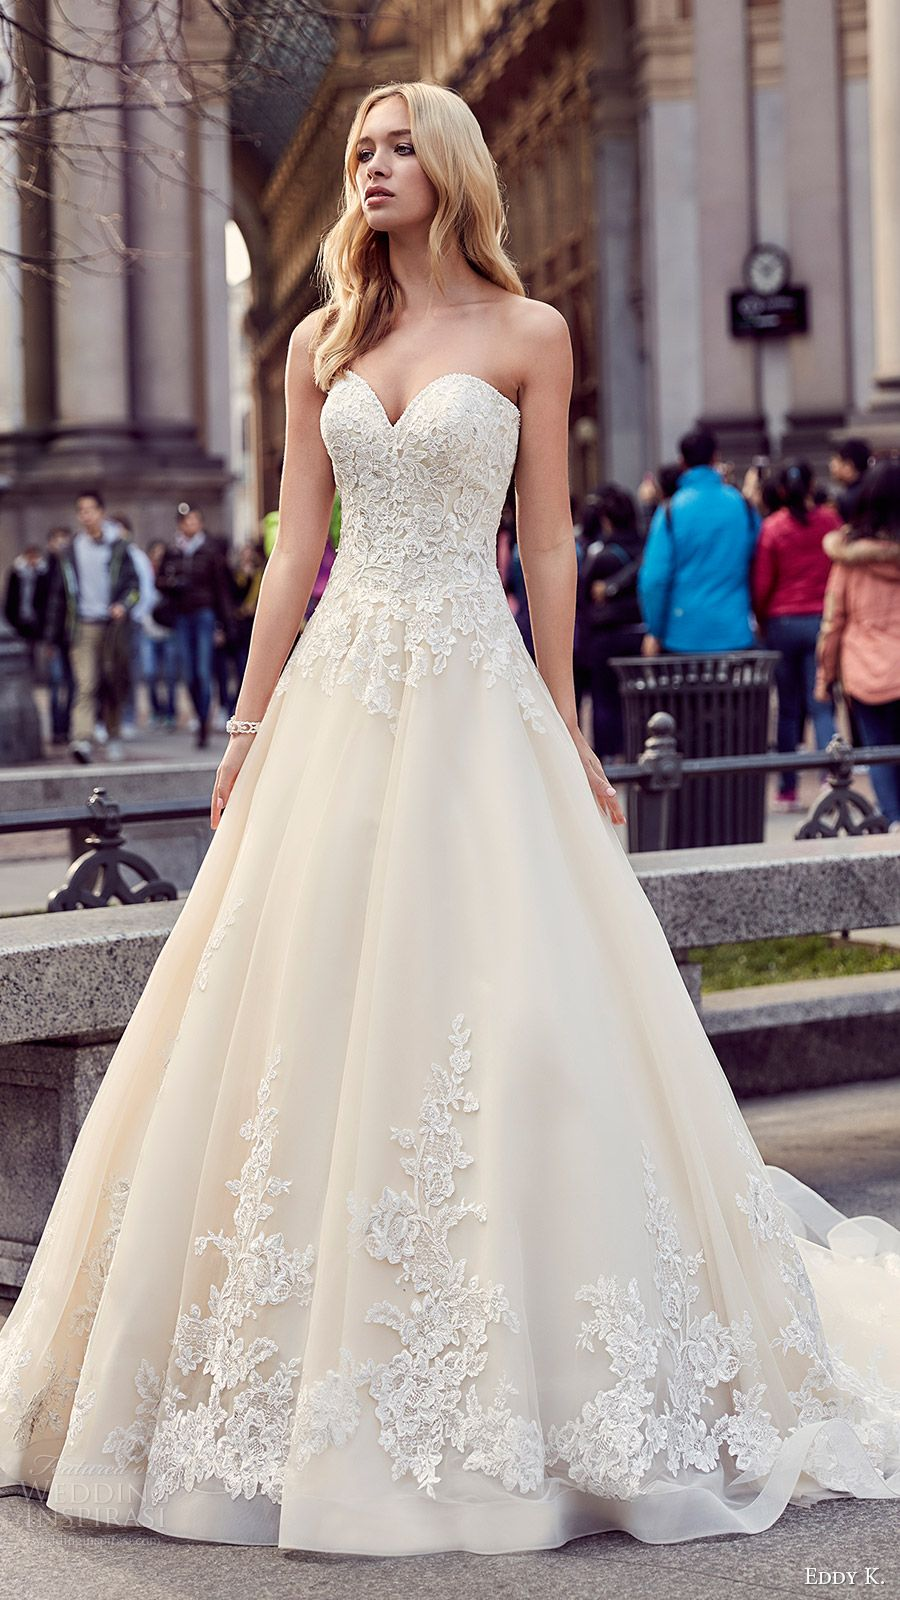 Lace ball gown wedding dresses  eddy k milano bridal  strapless sweetheart lace ball gown